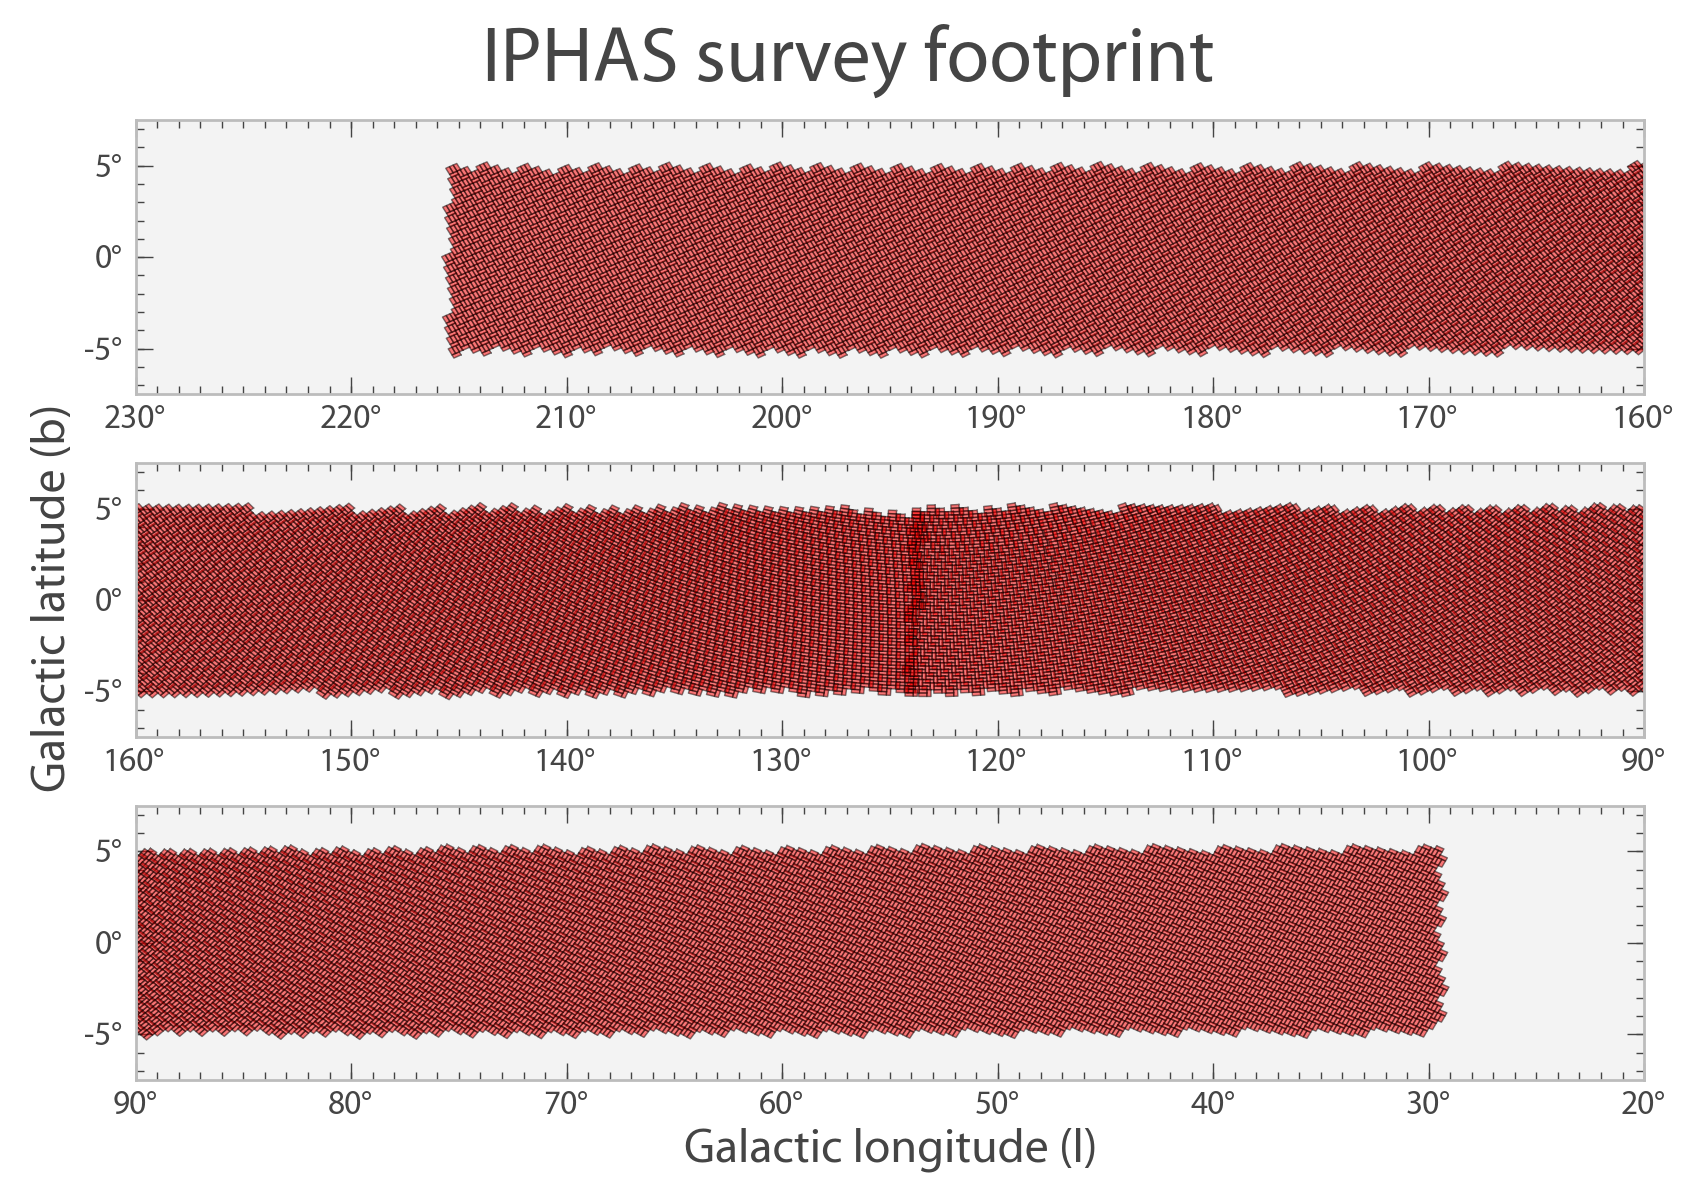 Footprint of the IPHAS survey.